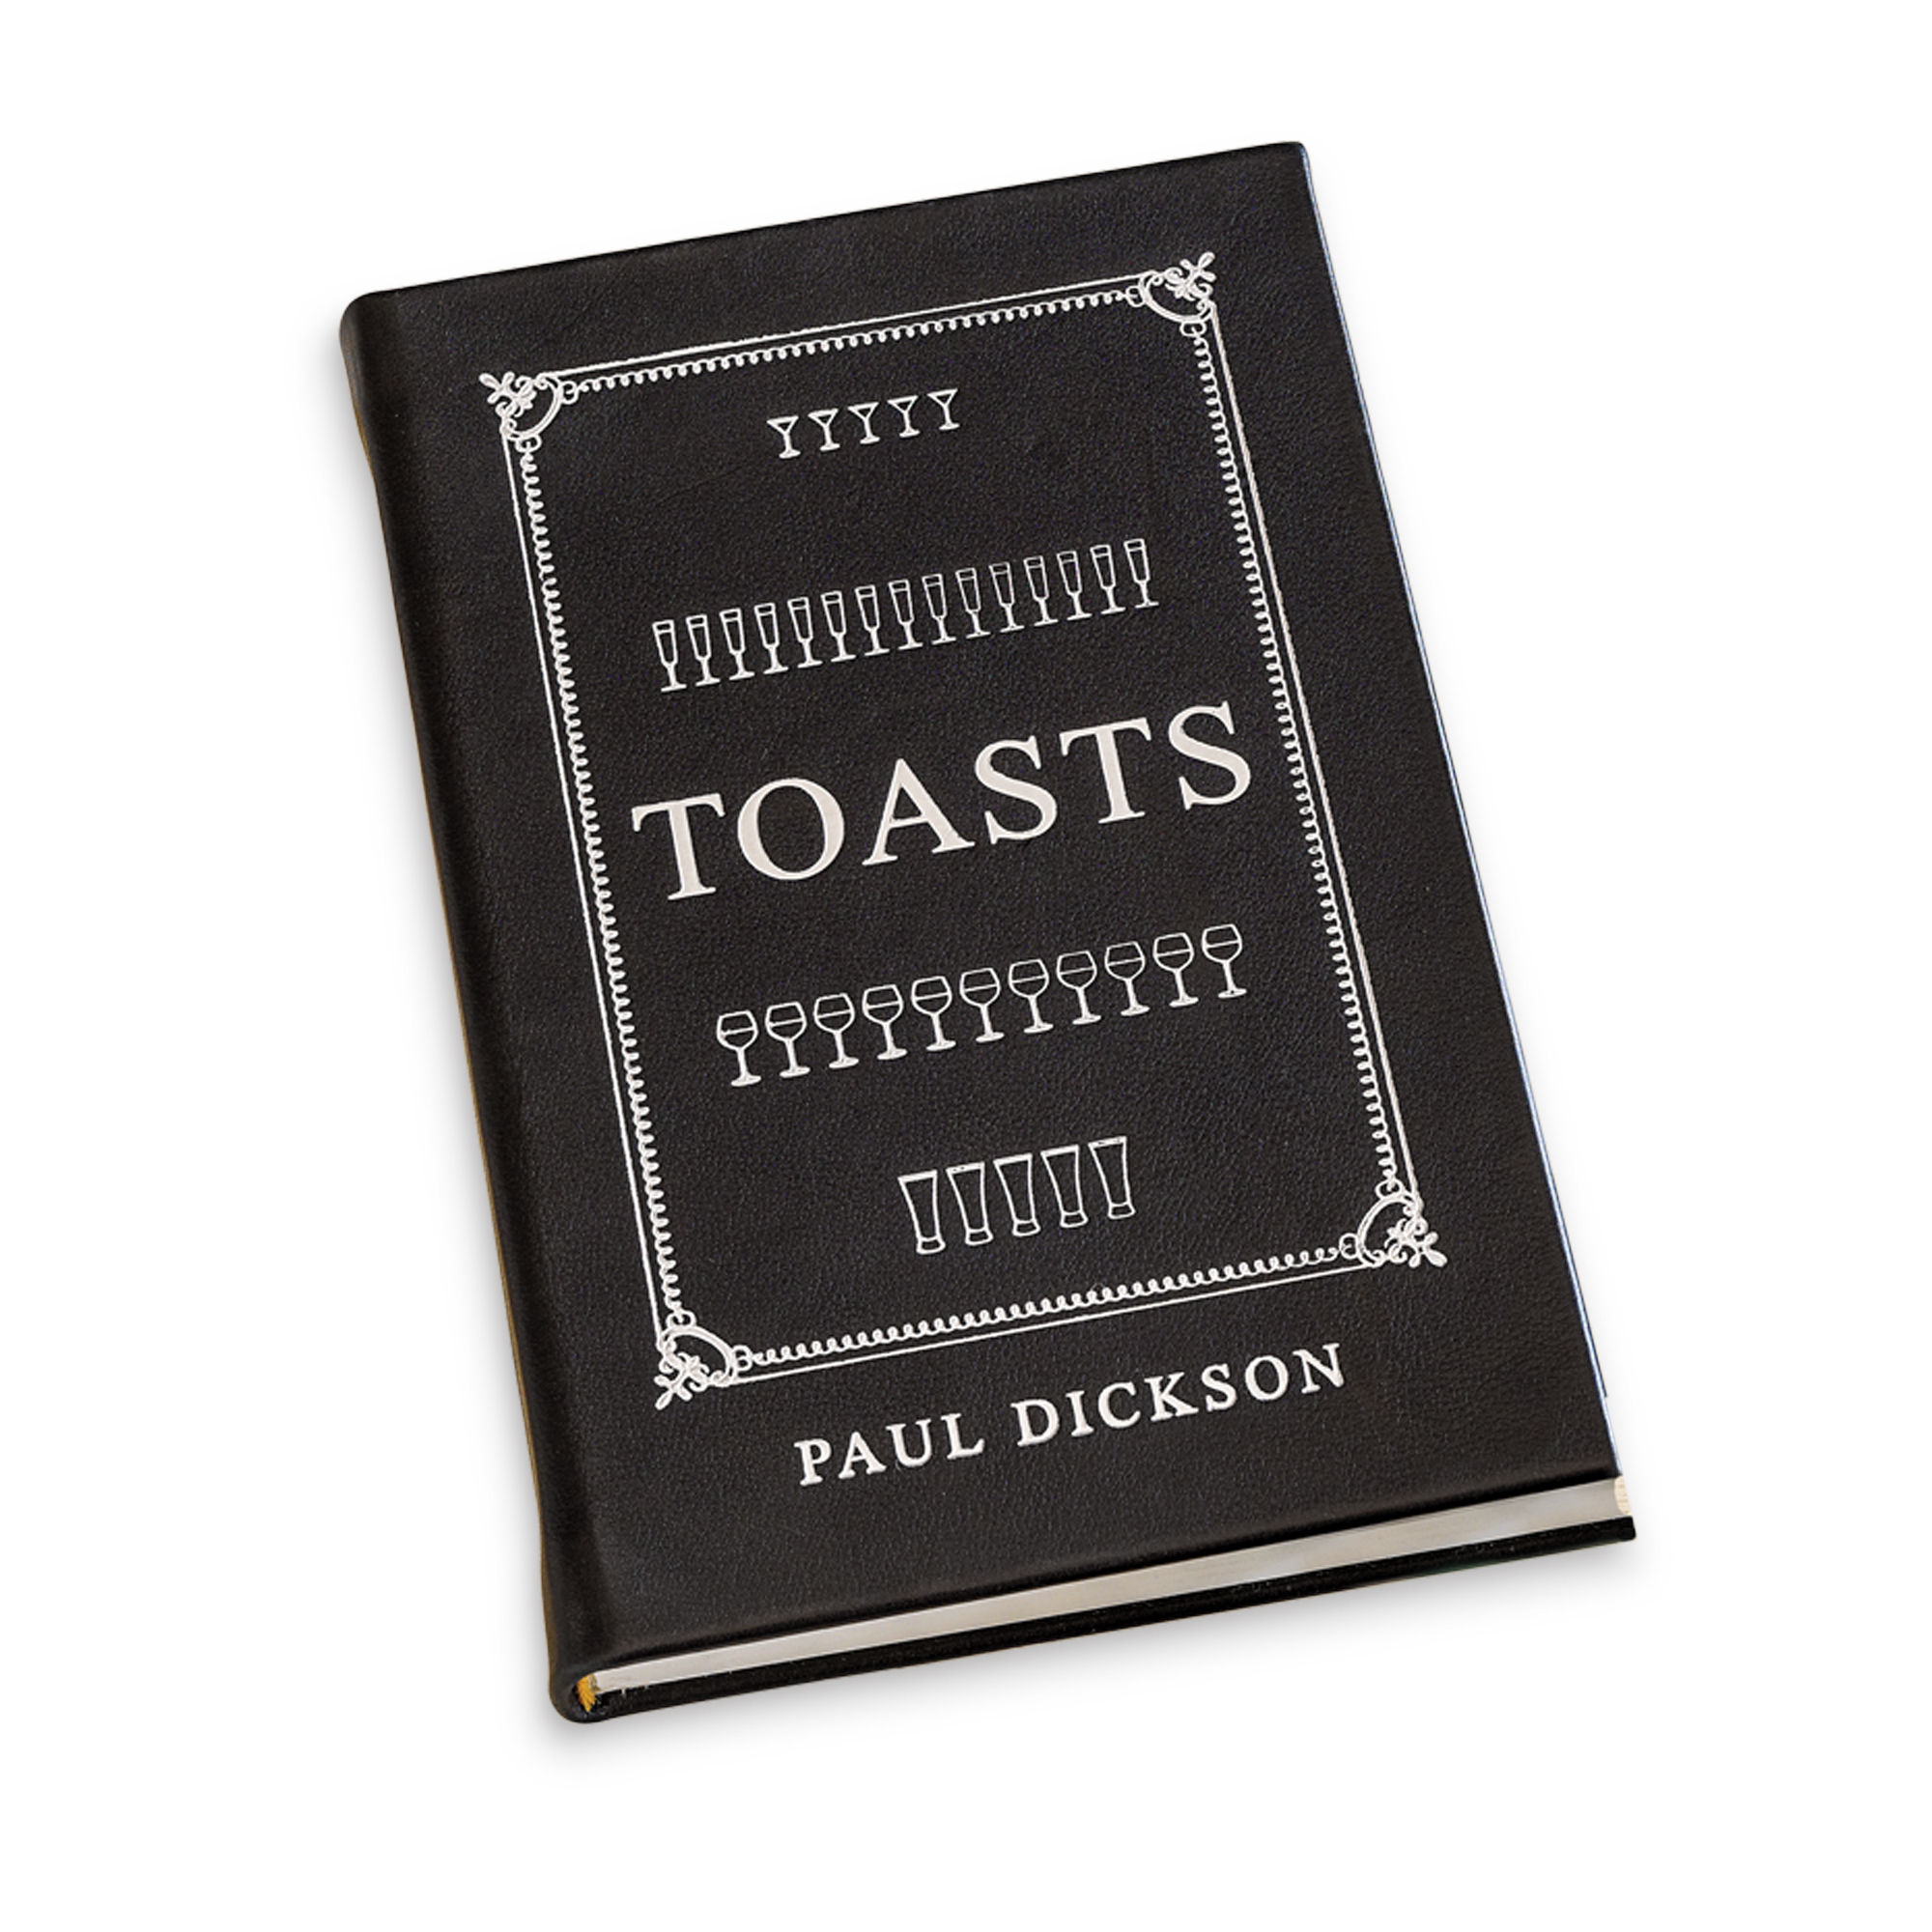 Leather Bound Book Of Toasts